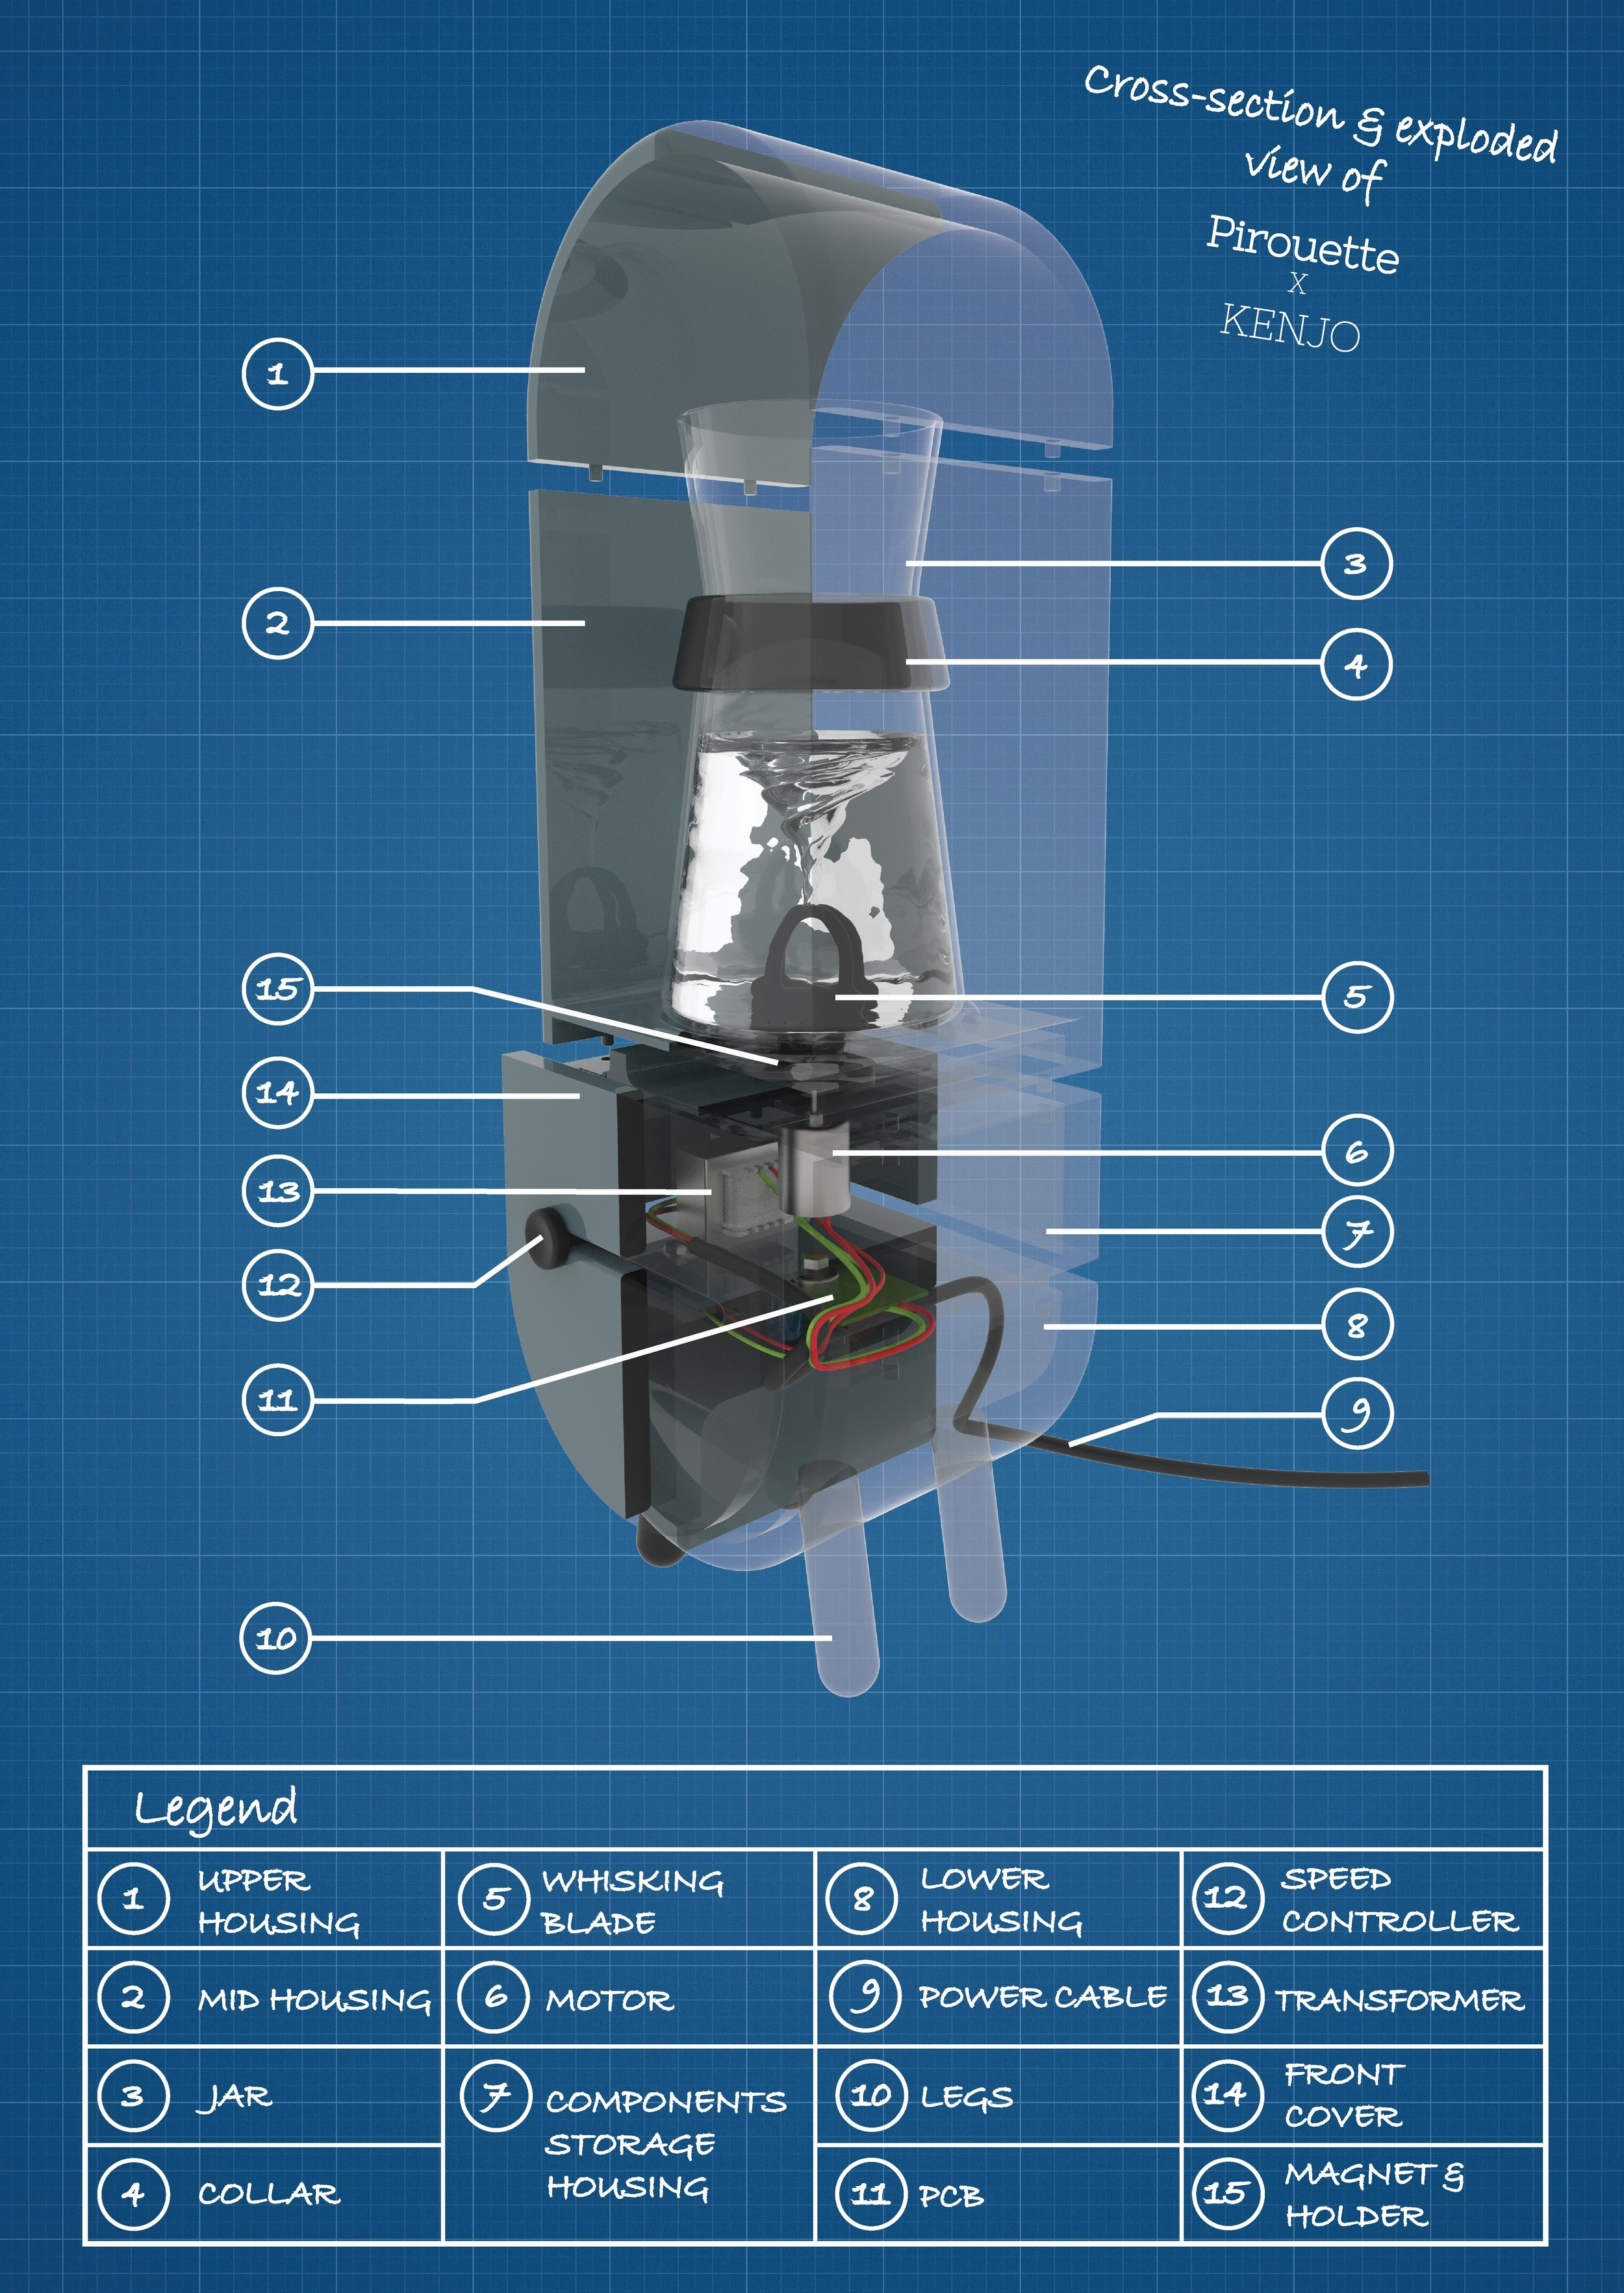 Pirouette Exploded view poster.jpg